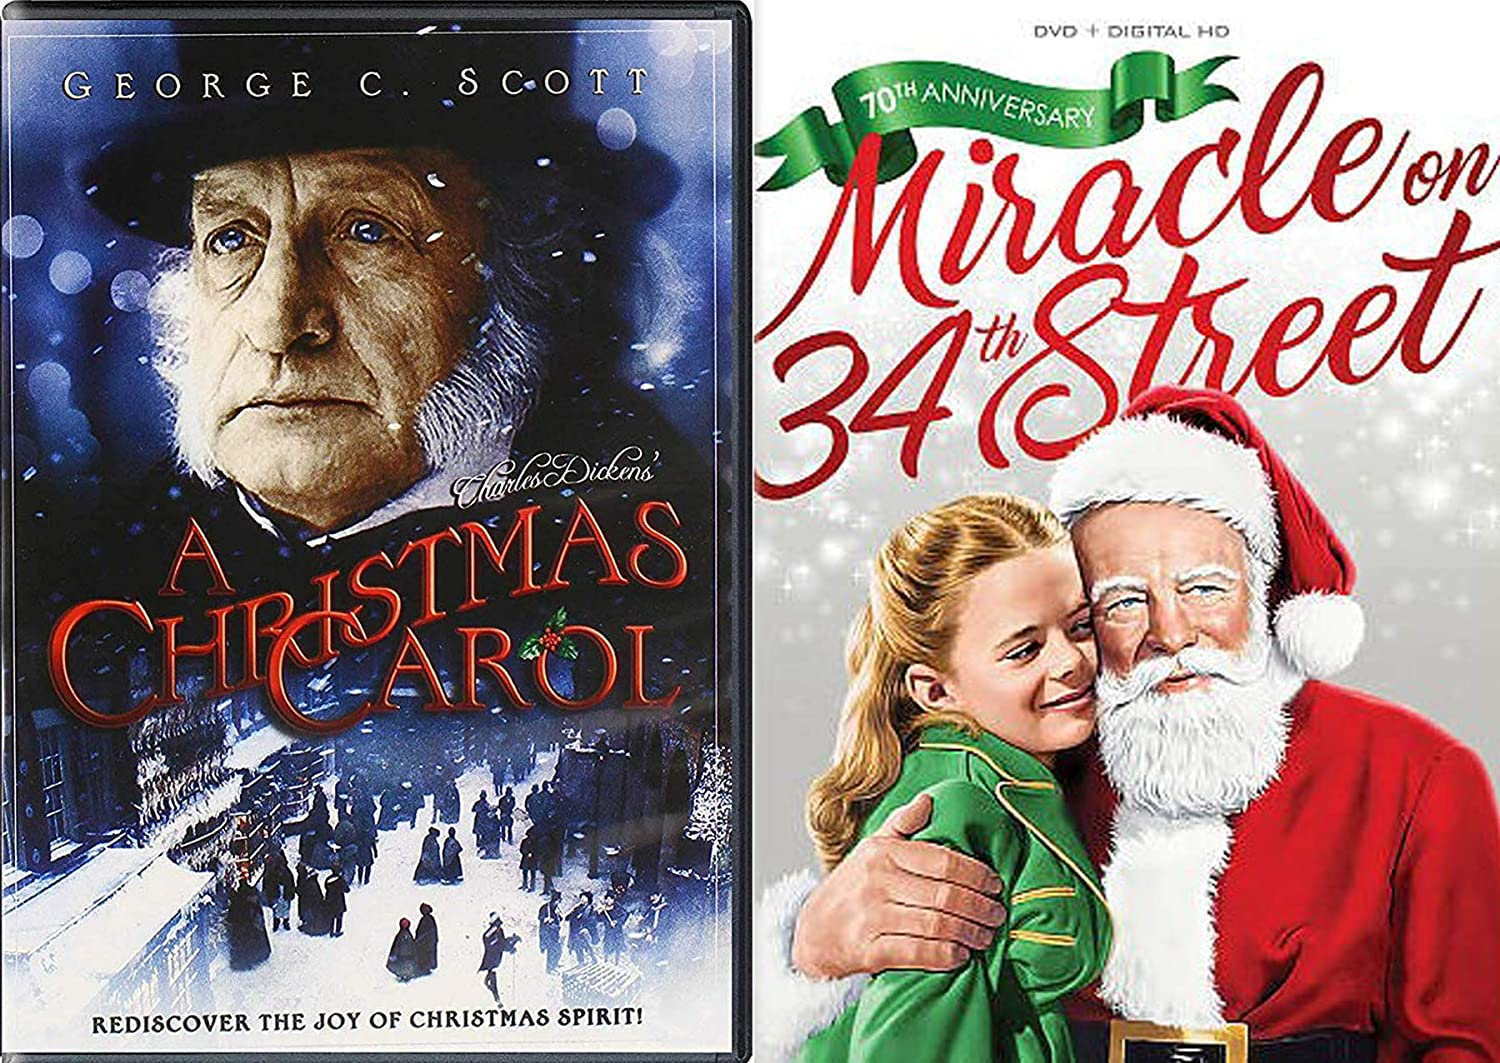 Discover Joy of Christmas Holiday Movie Pack Charles Dickens Christmas Carol + Original Miracle on 34th Street Black & White DVD 70th Edition Double Feature